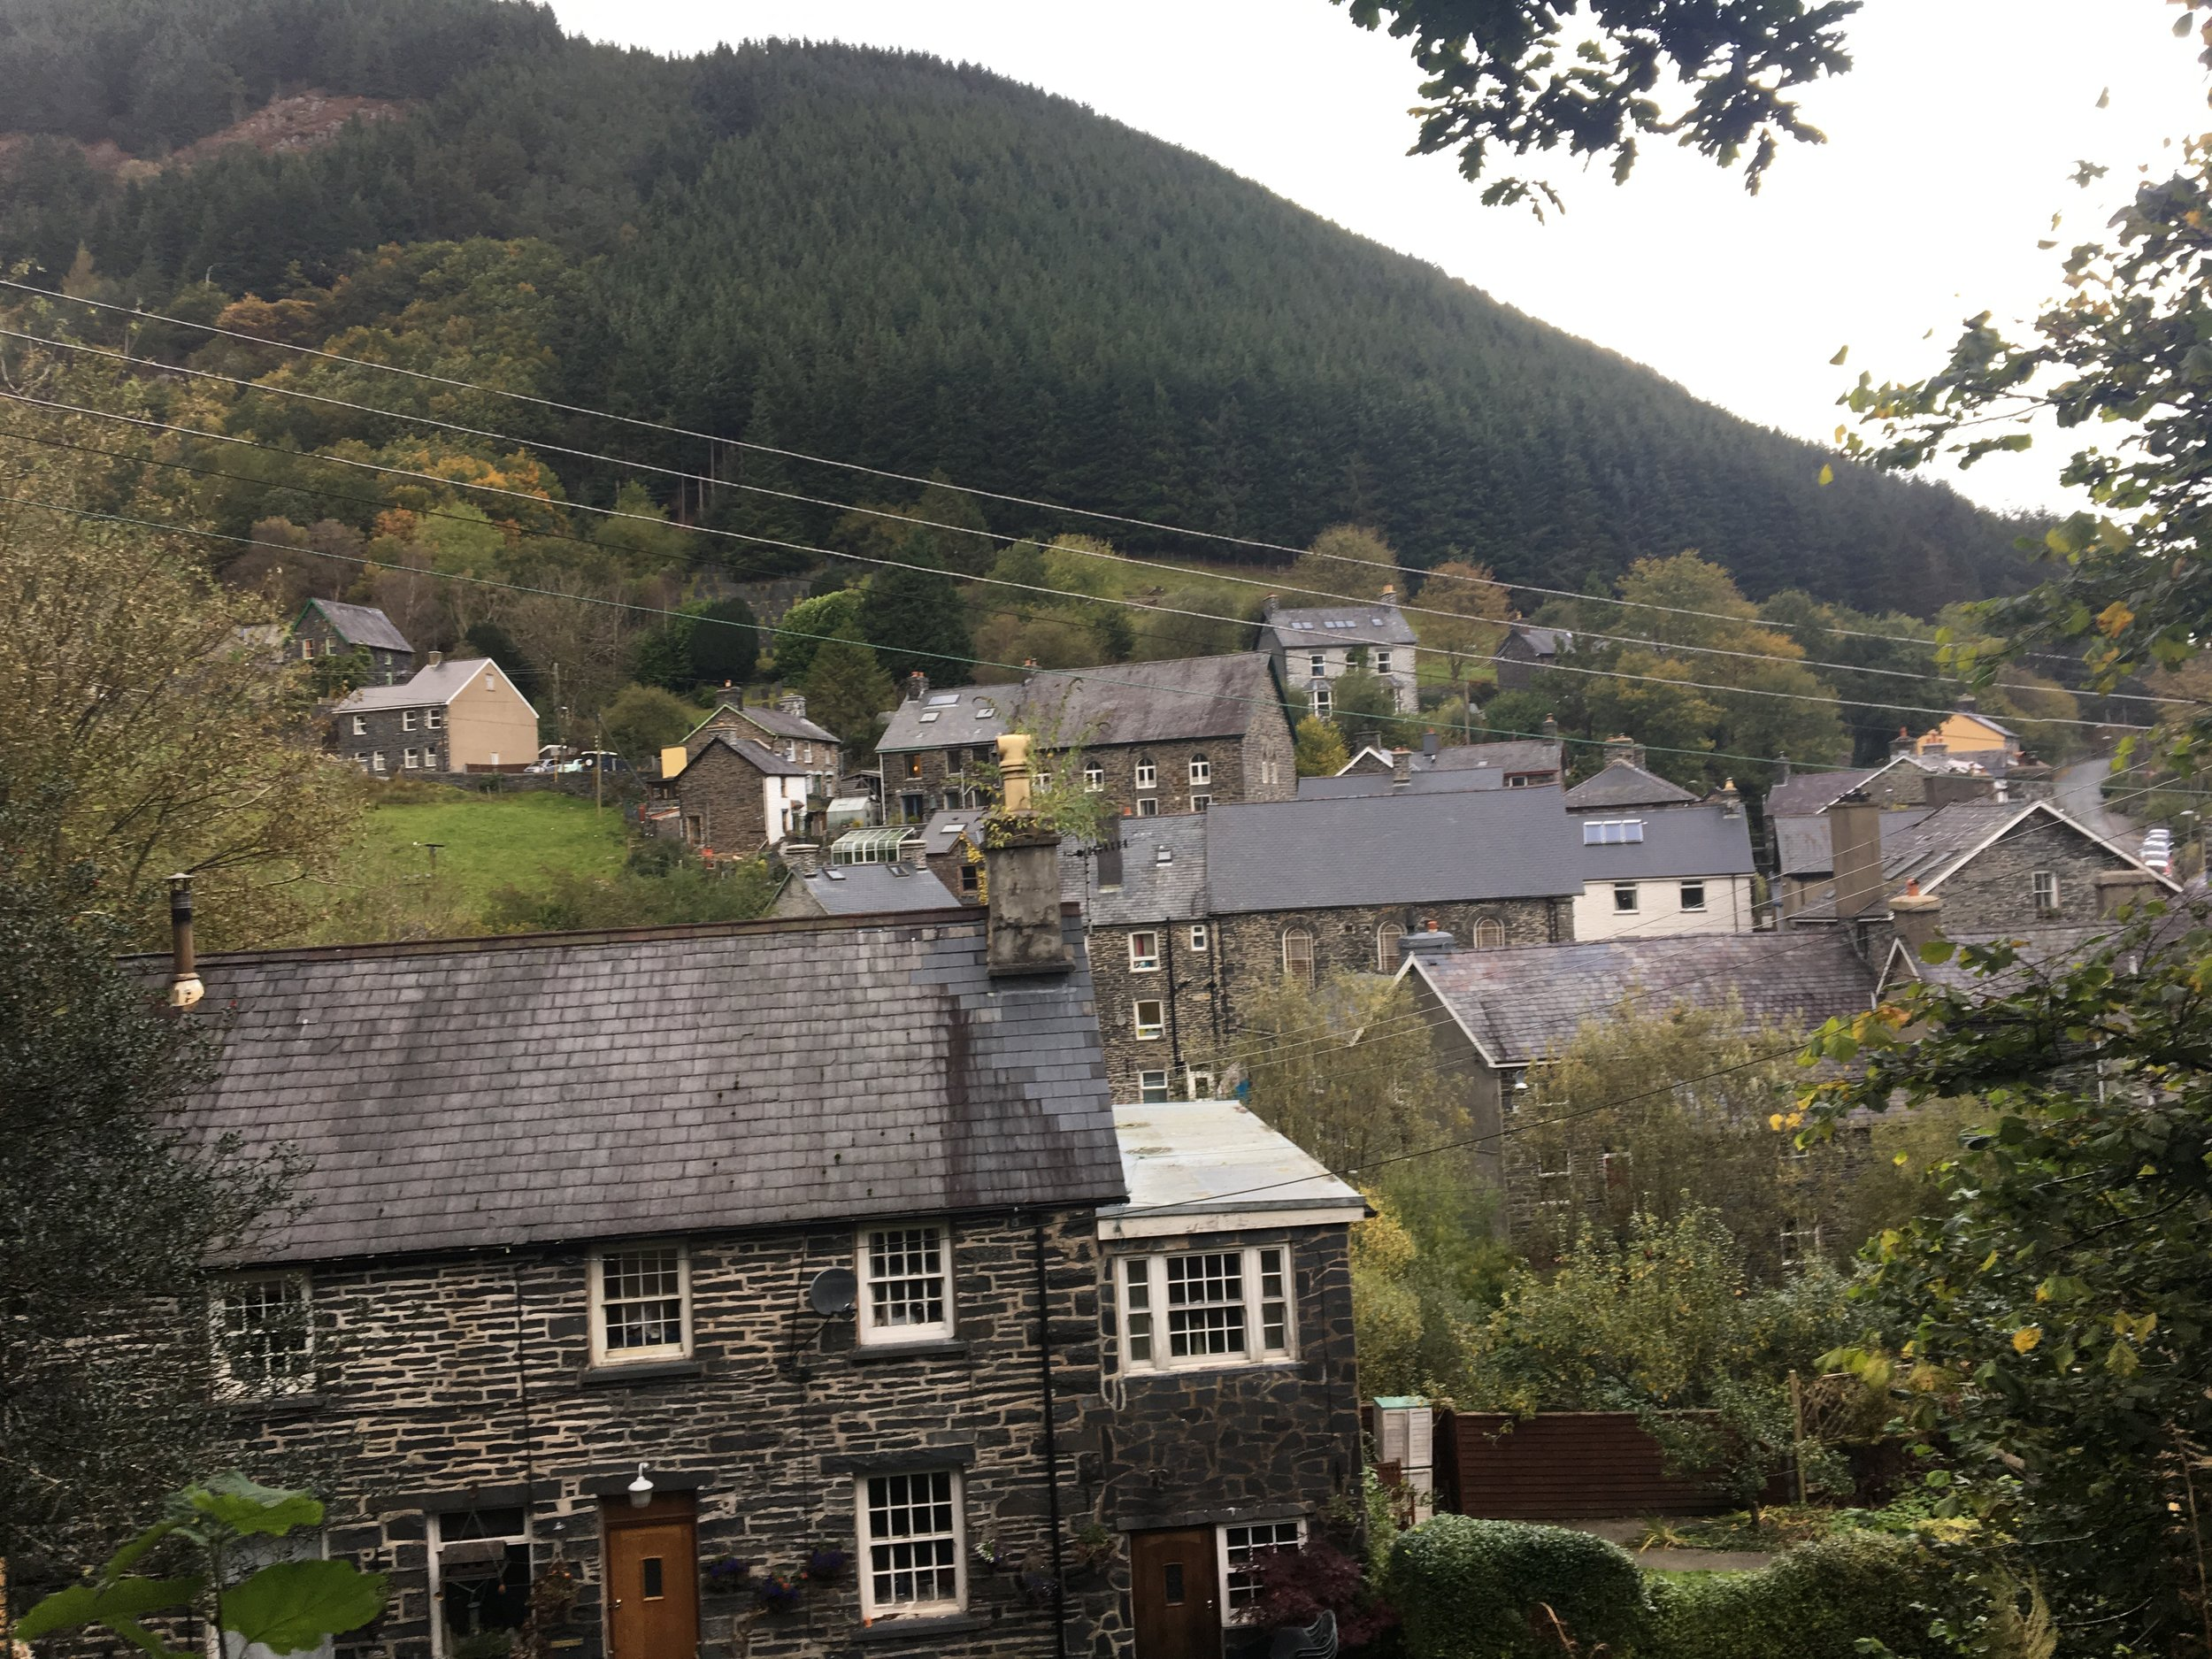 The town of Corris